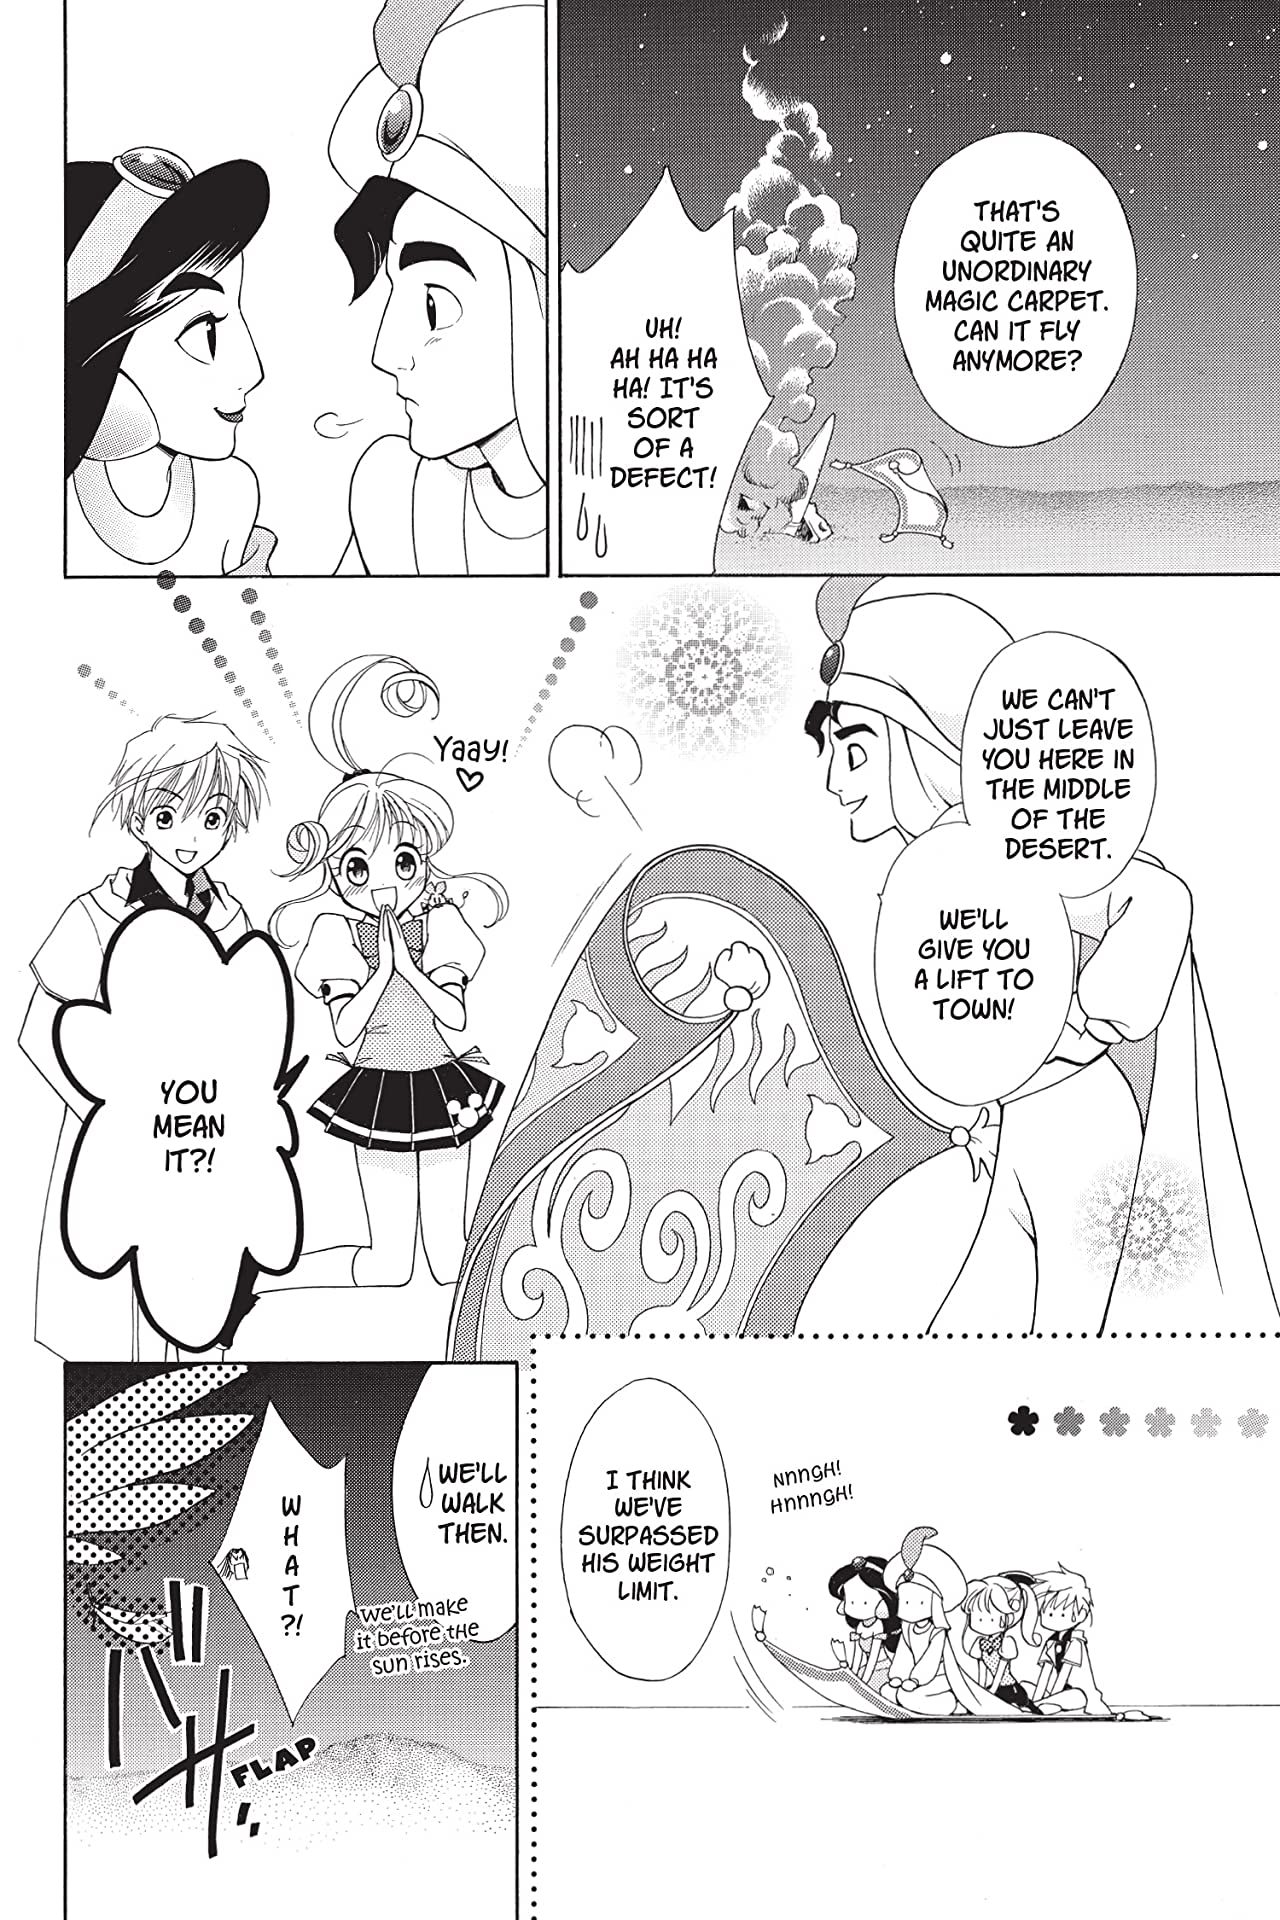 Disney Manga: Kilala Princess Vol. 5